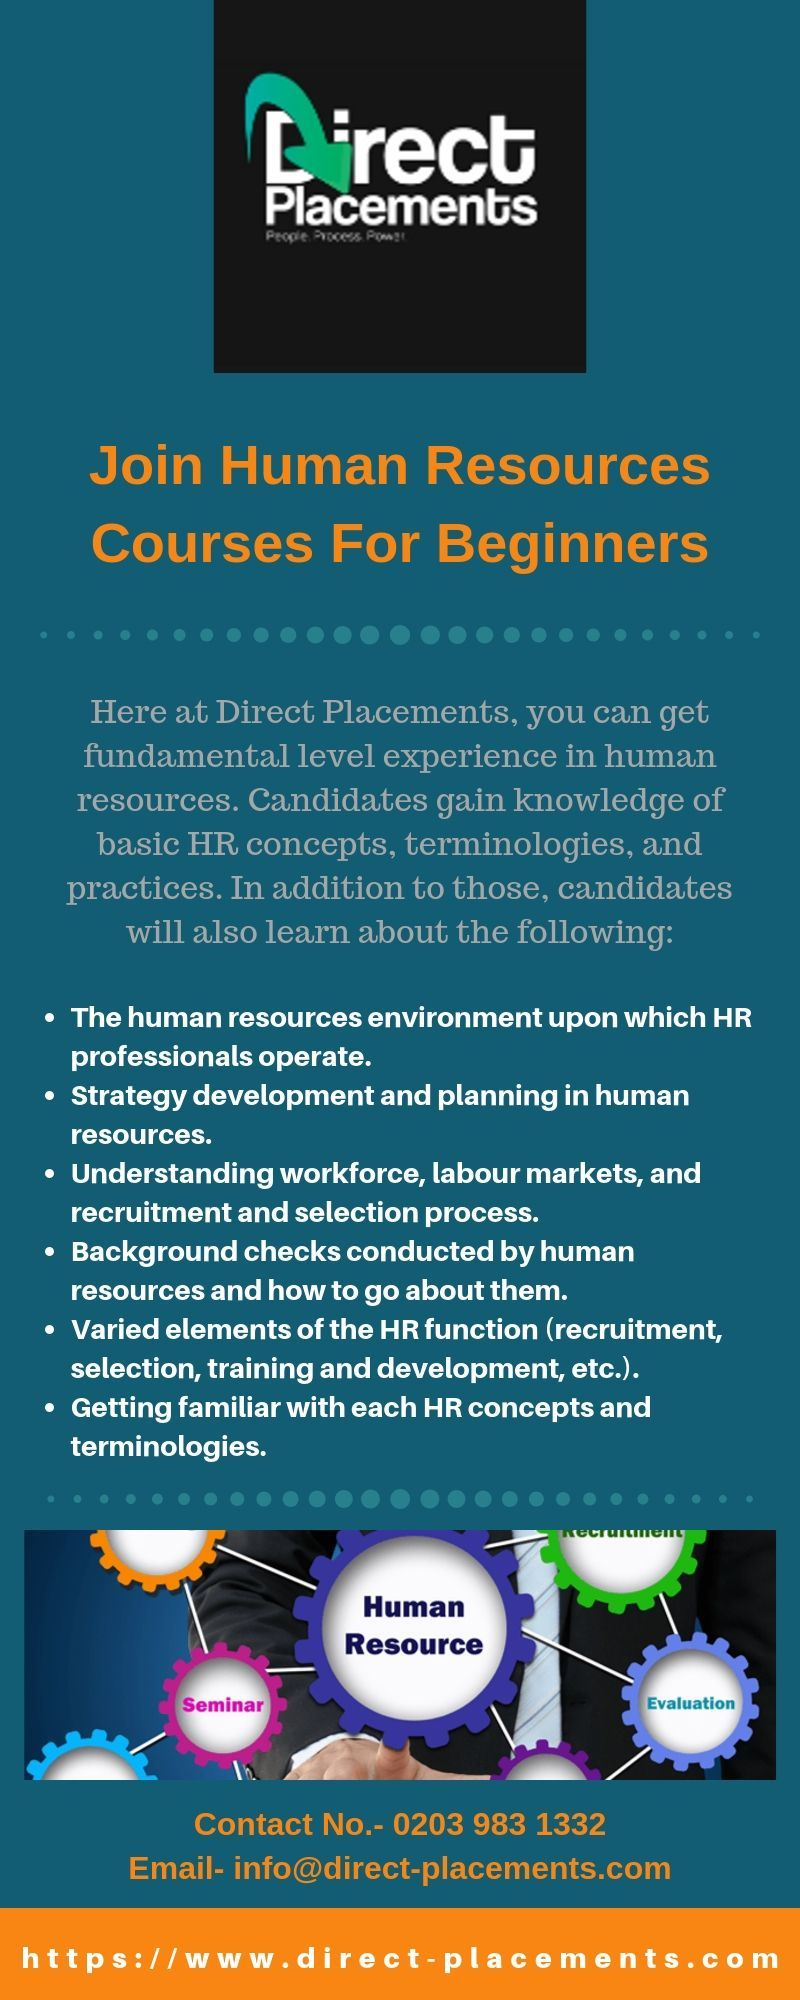 Join Human Resources Courses For Beginners Direct Placements Human Resources Work Experience Motivation Theory